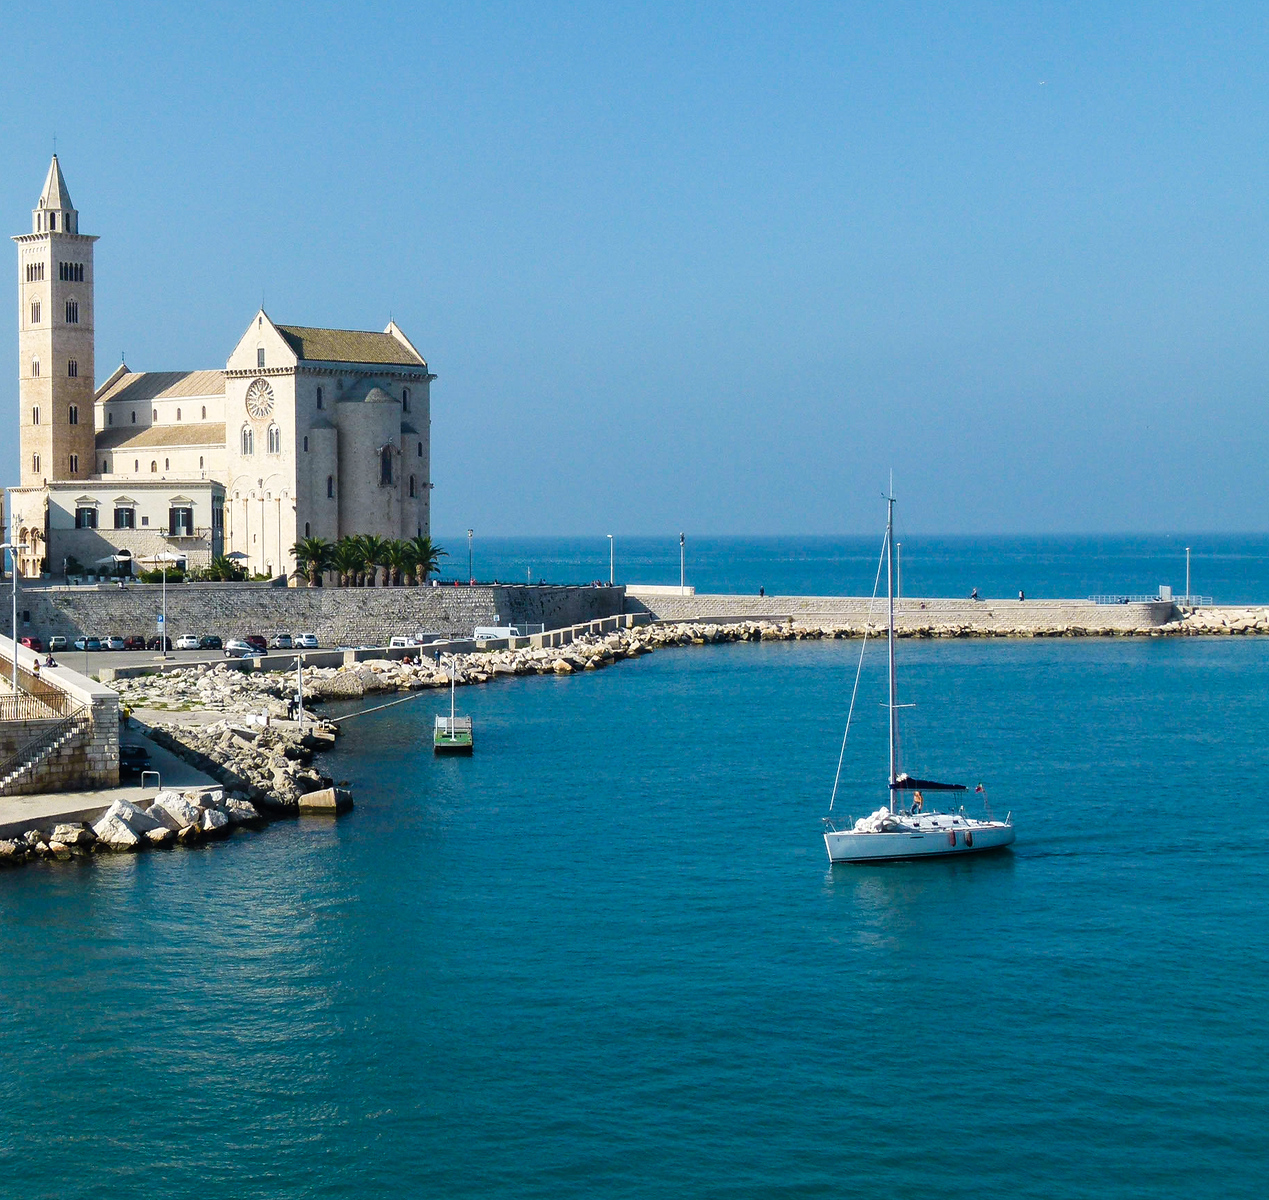 The cathedral sits next to the harbor in Trani, Italy. Be sure to include Trani on a boomer road trip in southern Italy. #vacation #roadtrip #Italy